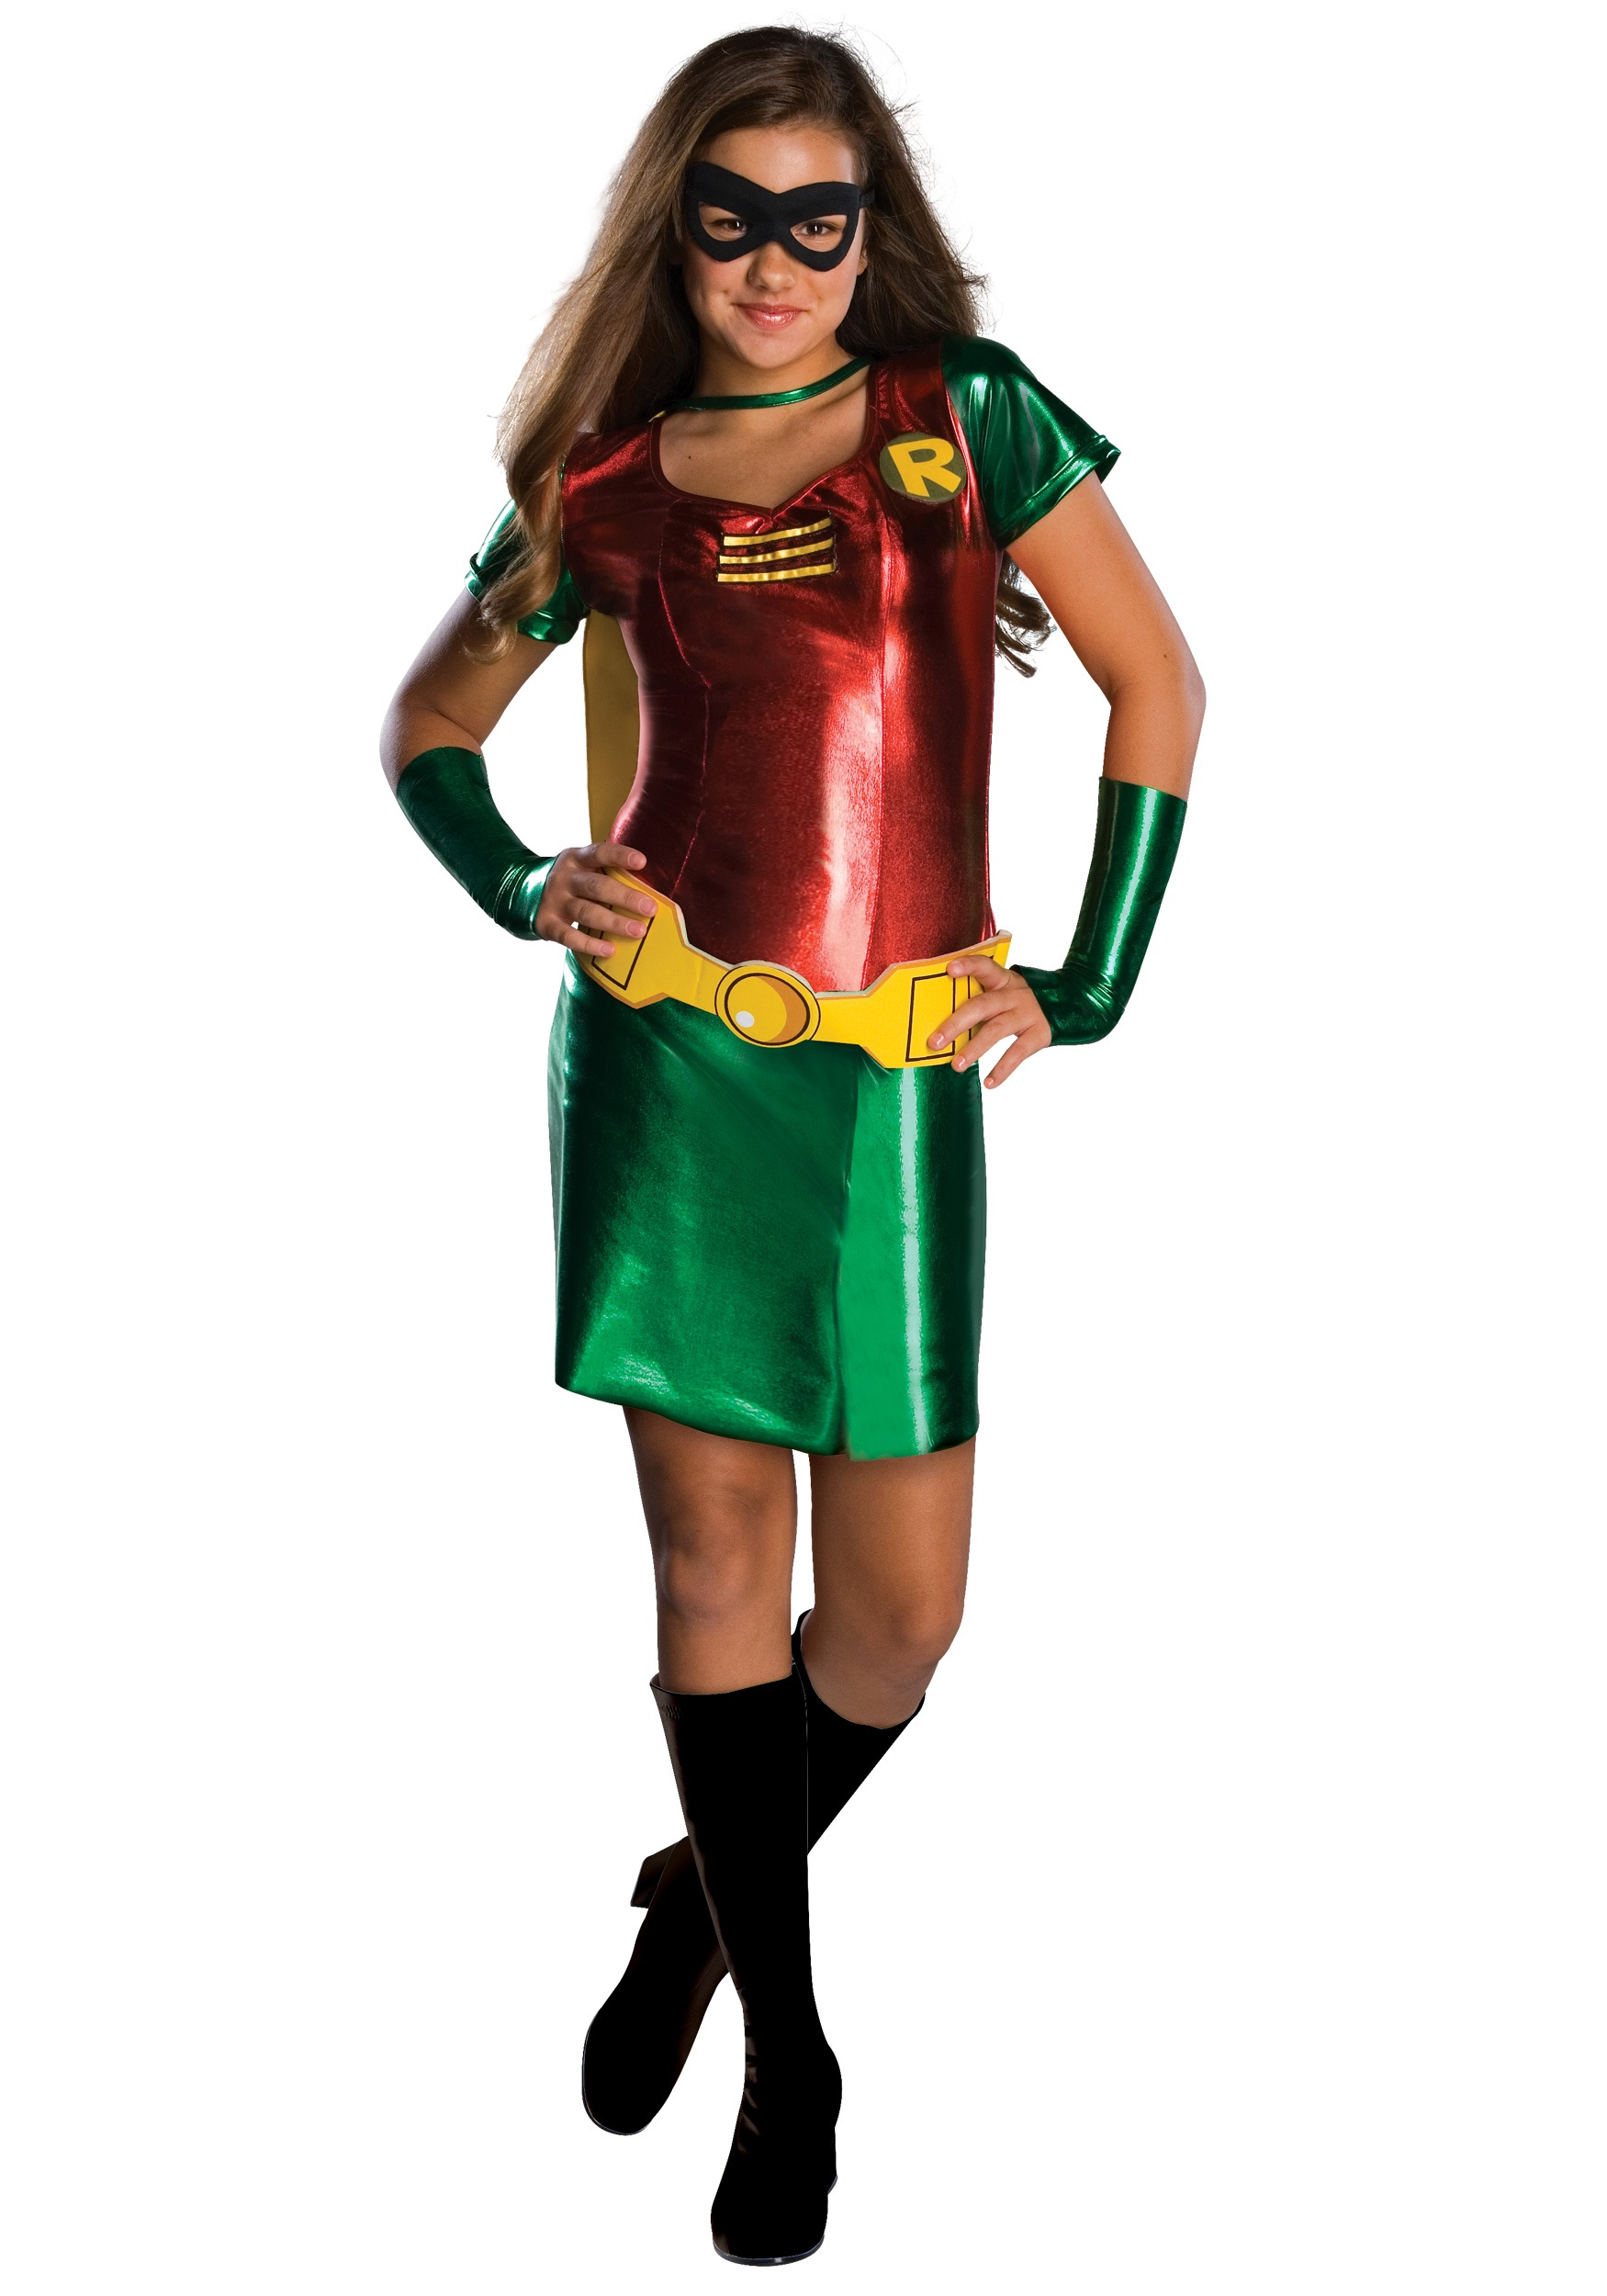 sc 1 st  Halloween Costumes : batman and robin girl costumes  - Germanpascual.Com